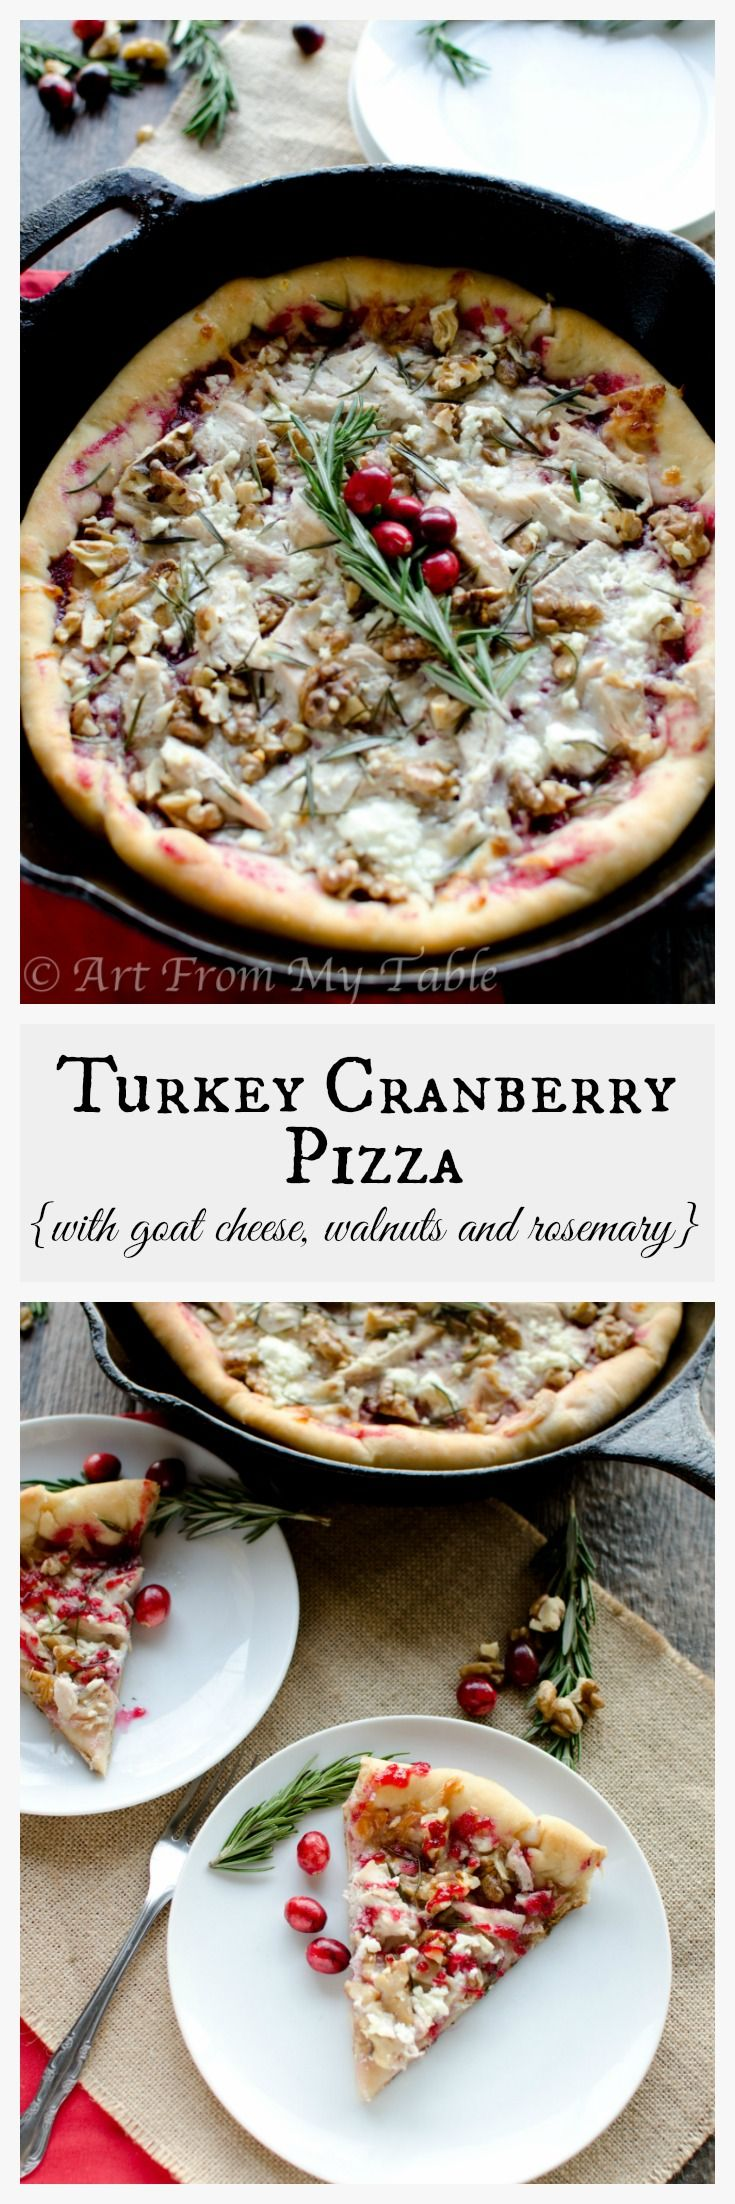 The only thing better than the Thanksgiving meal is the leftovers.  Try changing up the usual leftovers for this fabulous Turkey Cranberry Pizza with goat cheese, walnuts and fresh rosemary. Perfectly festive for Christmas too!